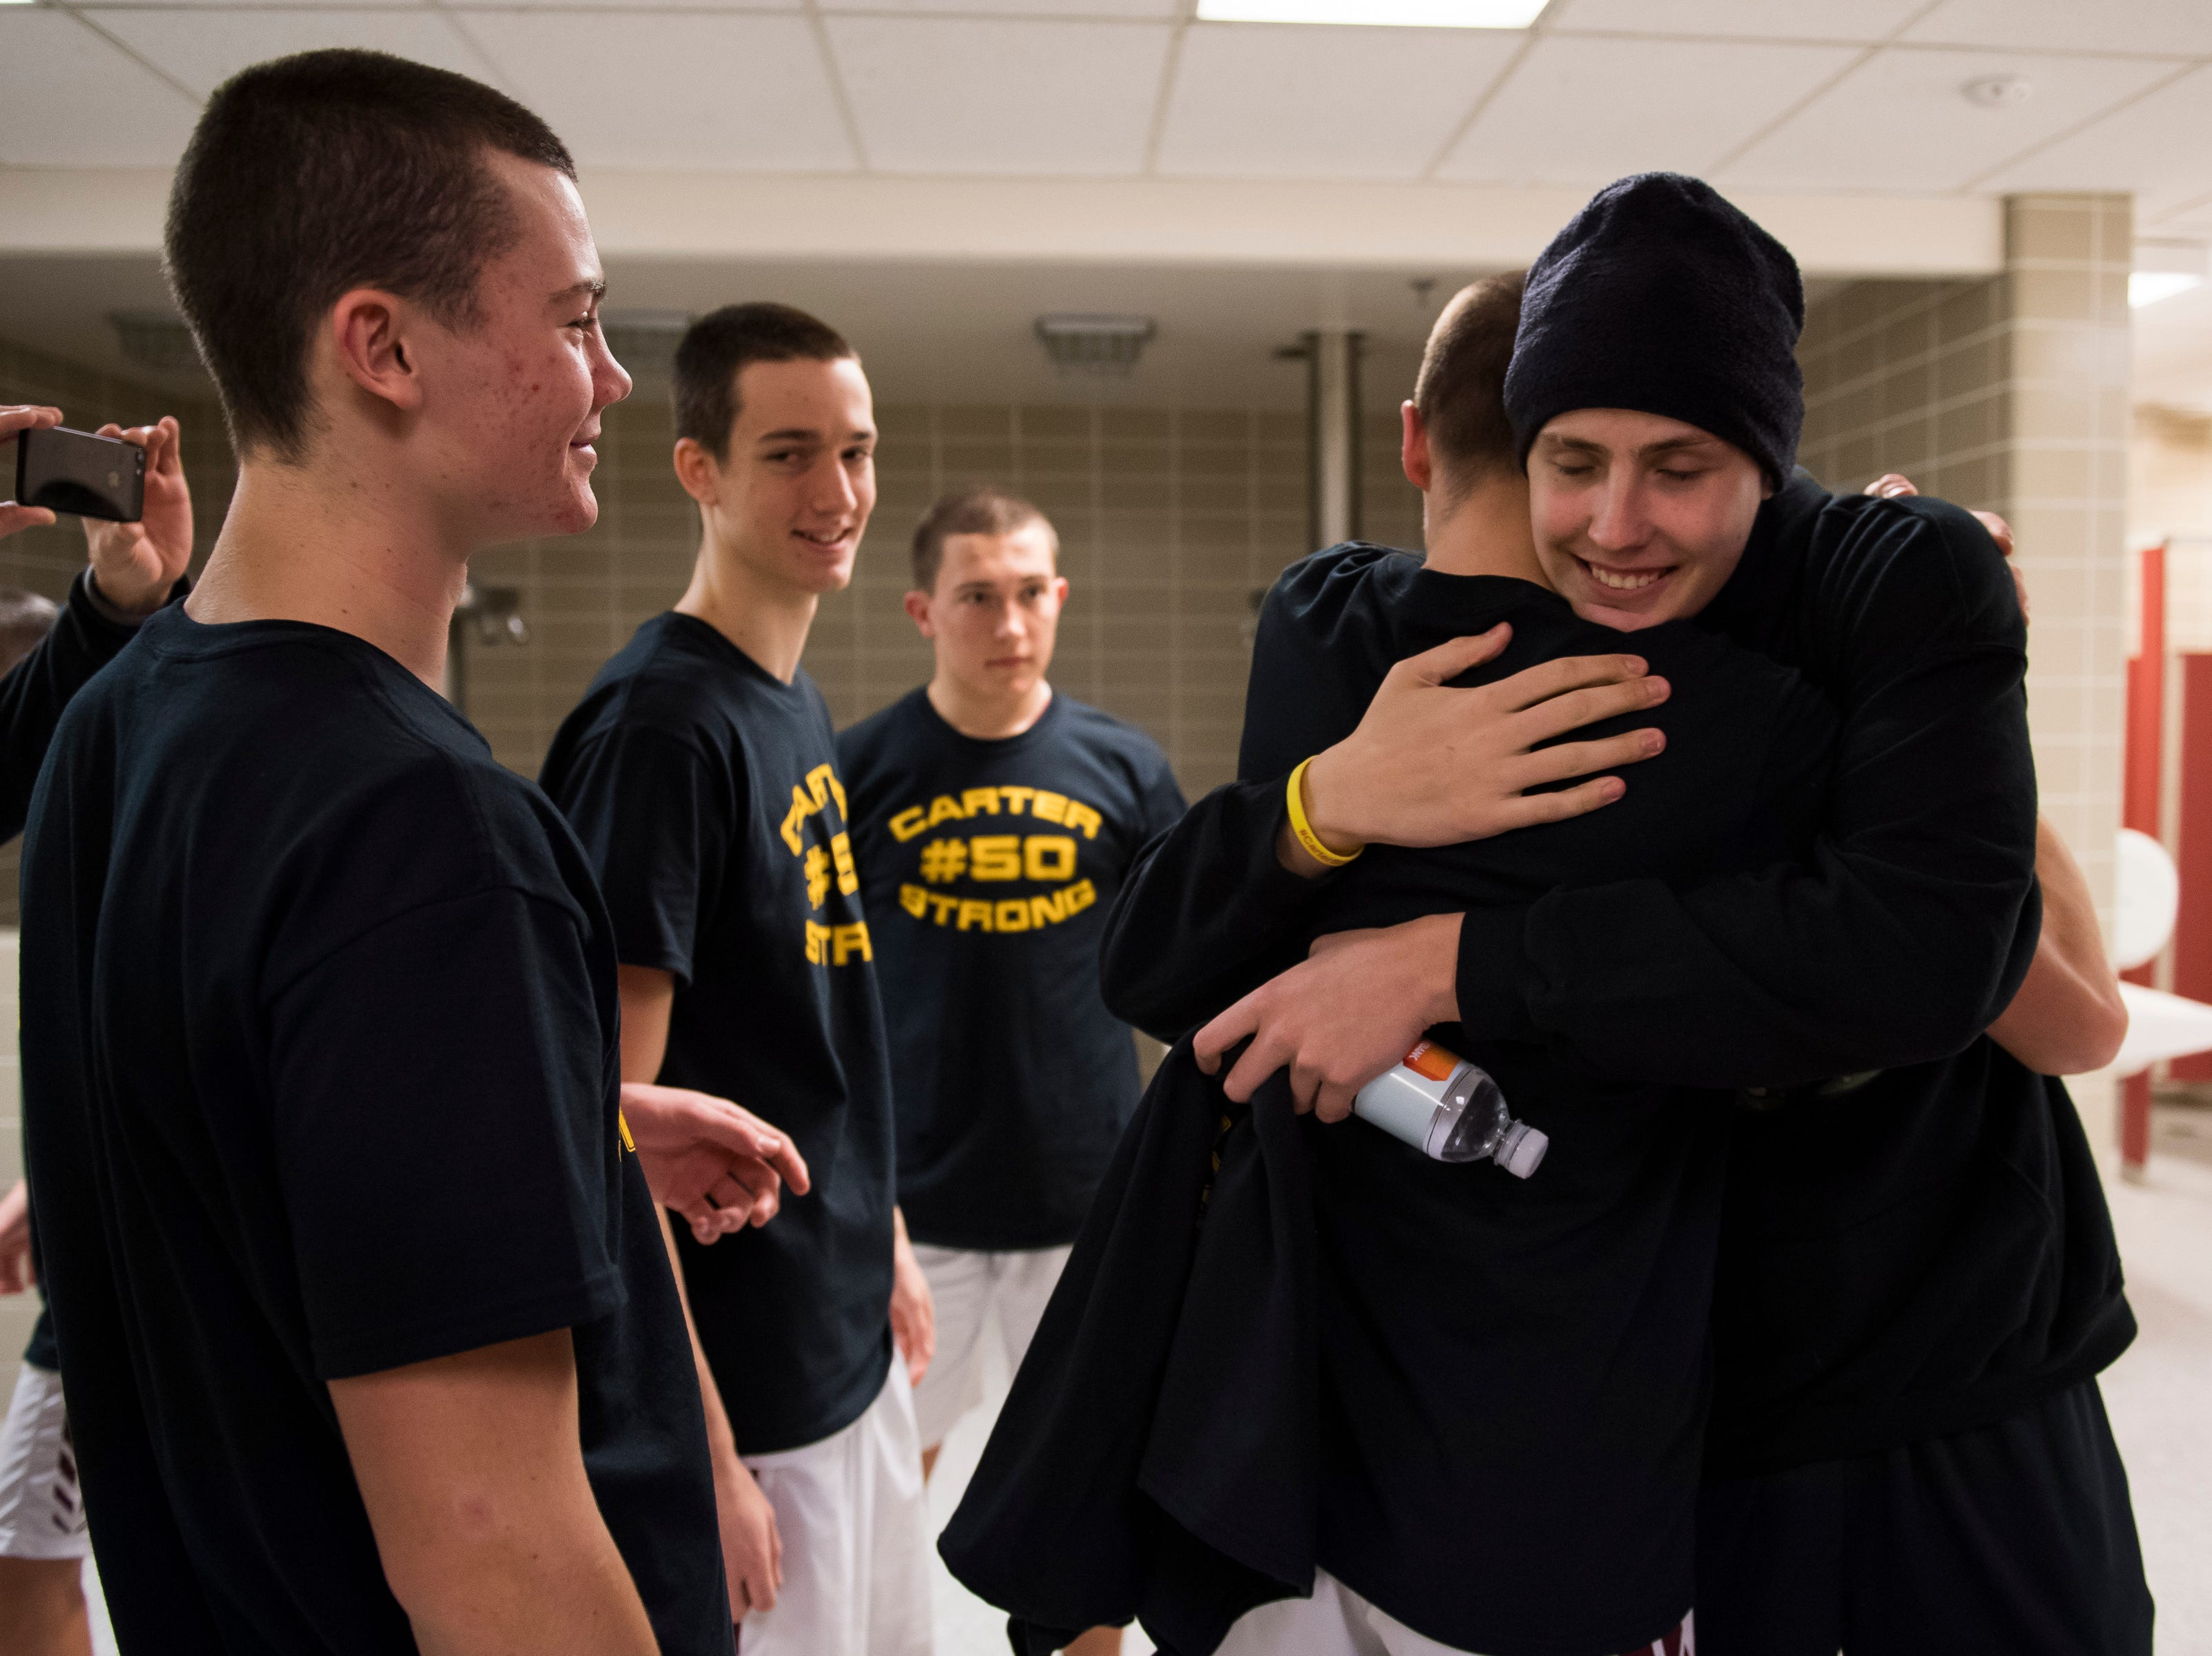 Rocky Mountain High School senior Carter Edgerley (50) hugs his teammates in the lockeroom before a game against rival Fort Collins High School on Friday, Jan. 18, 2019, at Rocky Mountain High School in Fort Collins, Colo.